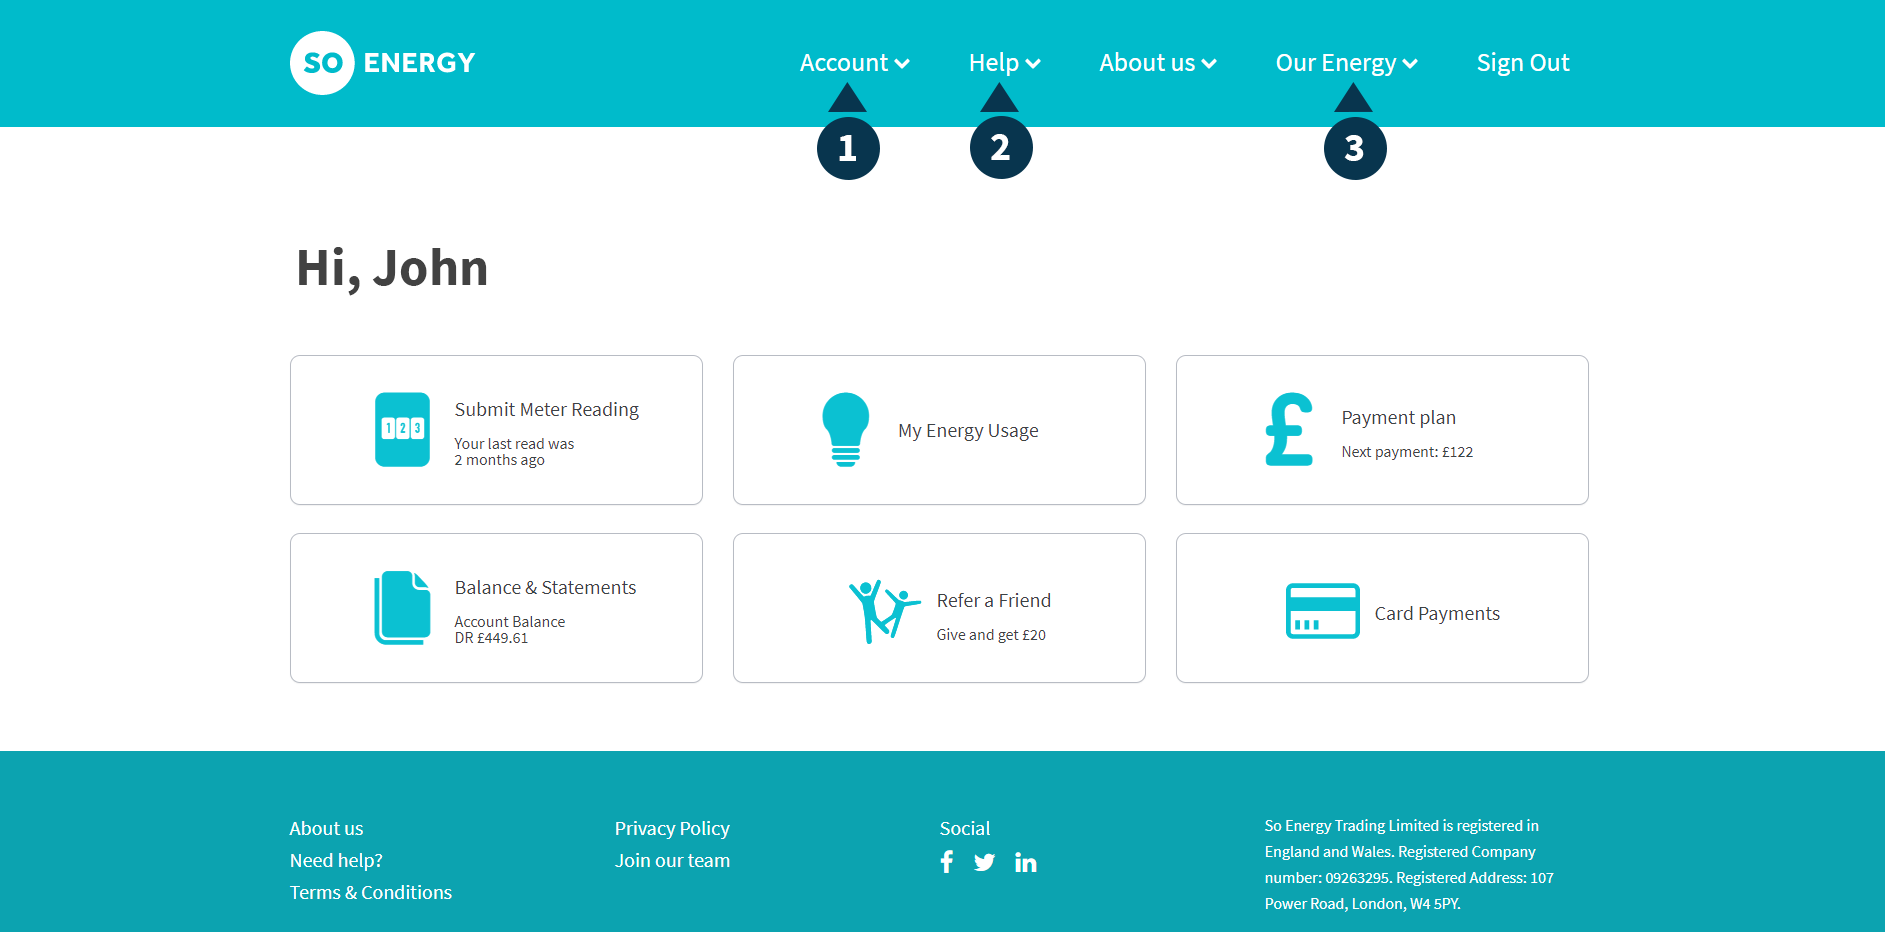 A screenshot of an example user page with the account, help and our energy tabs numbered 1 to 3